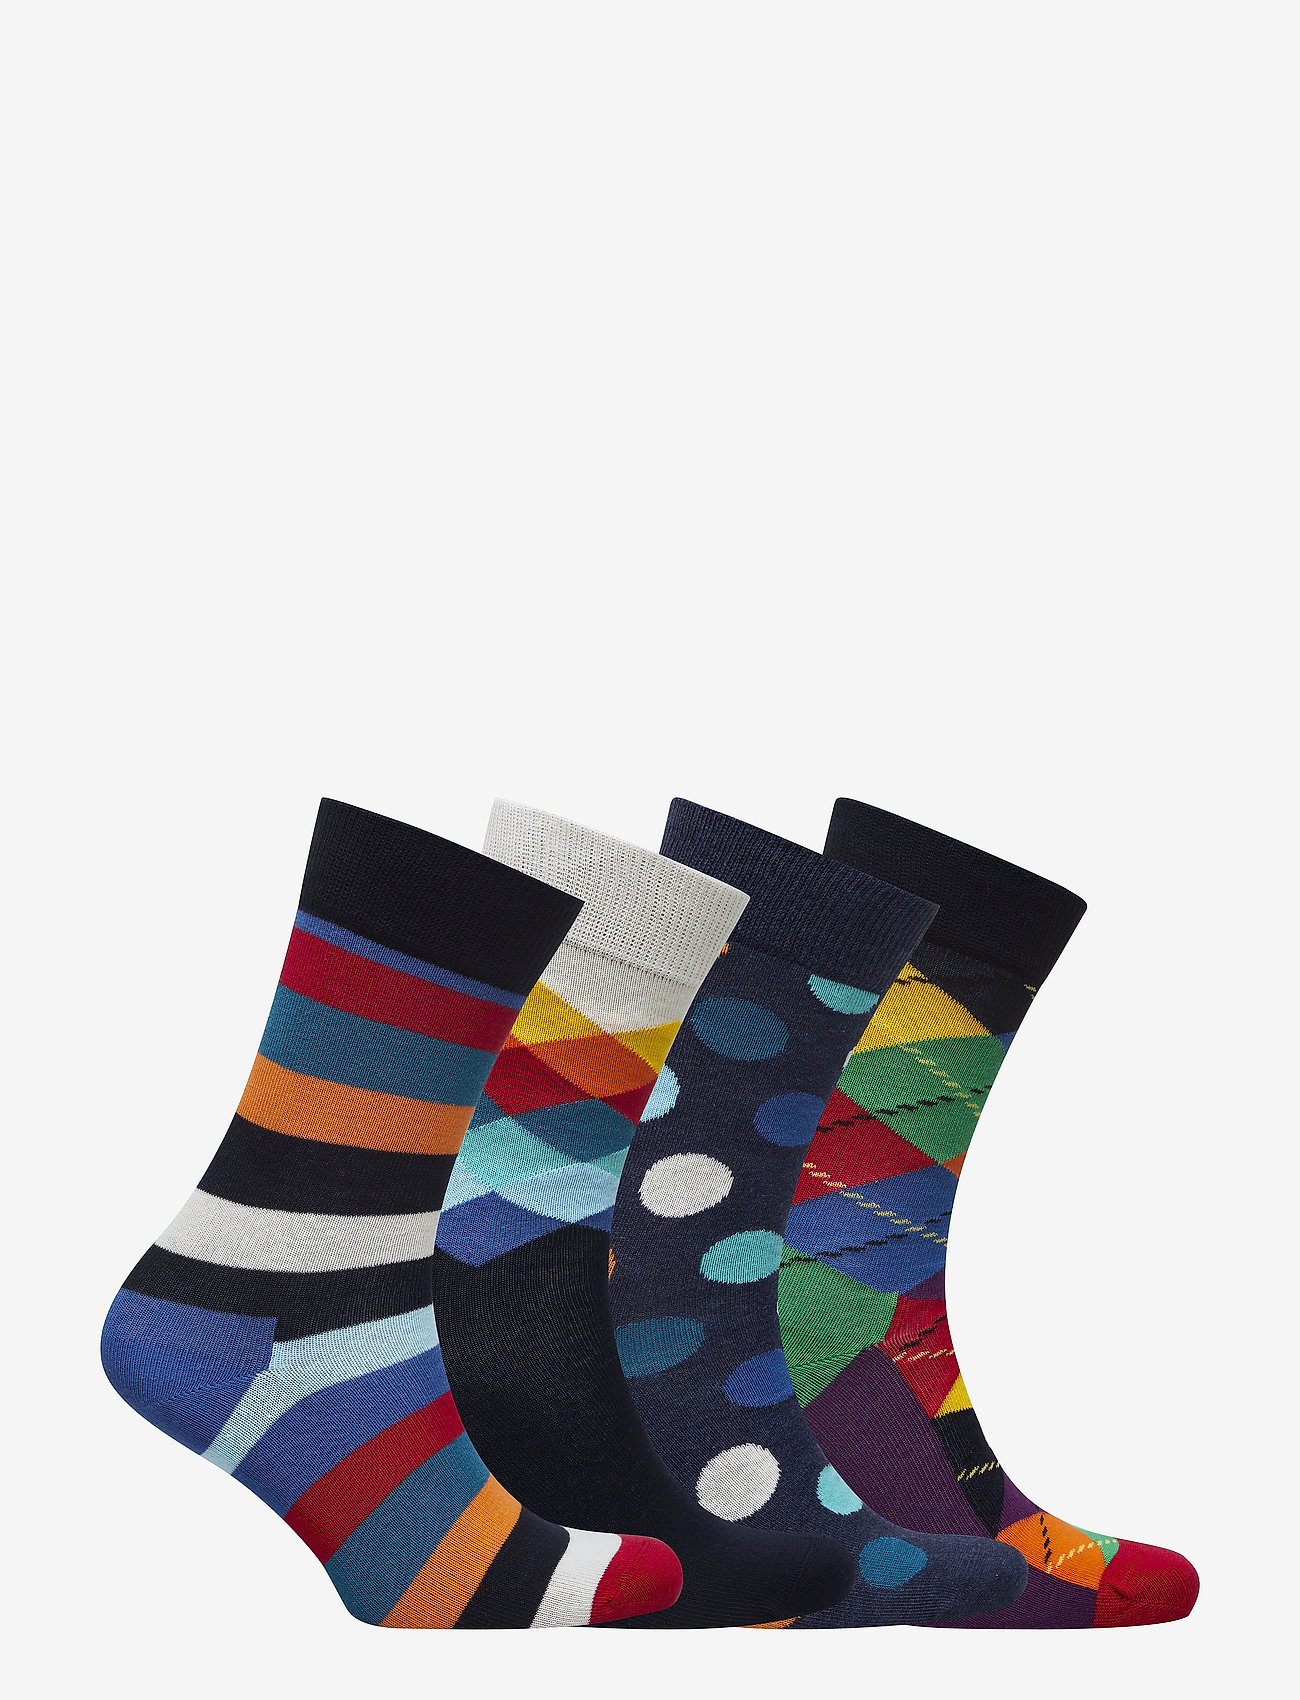 4-pack Multi-color Socks Gift Set (Blue) - Happy Socks syaKeC